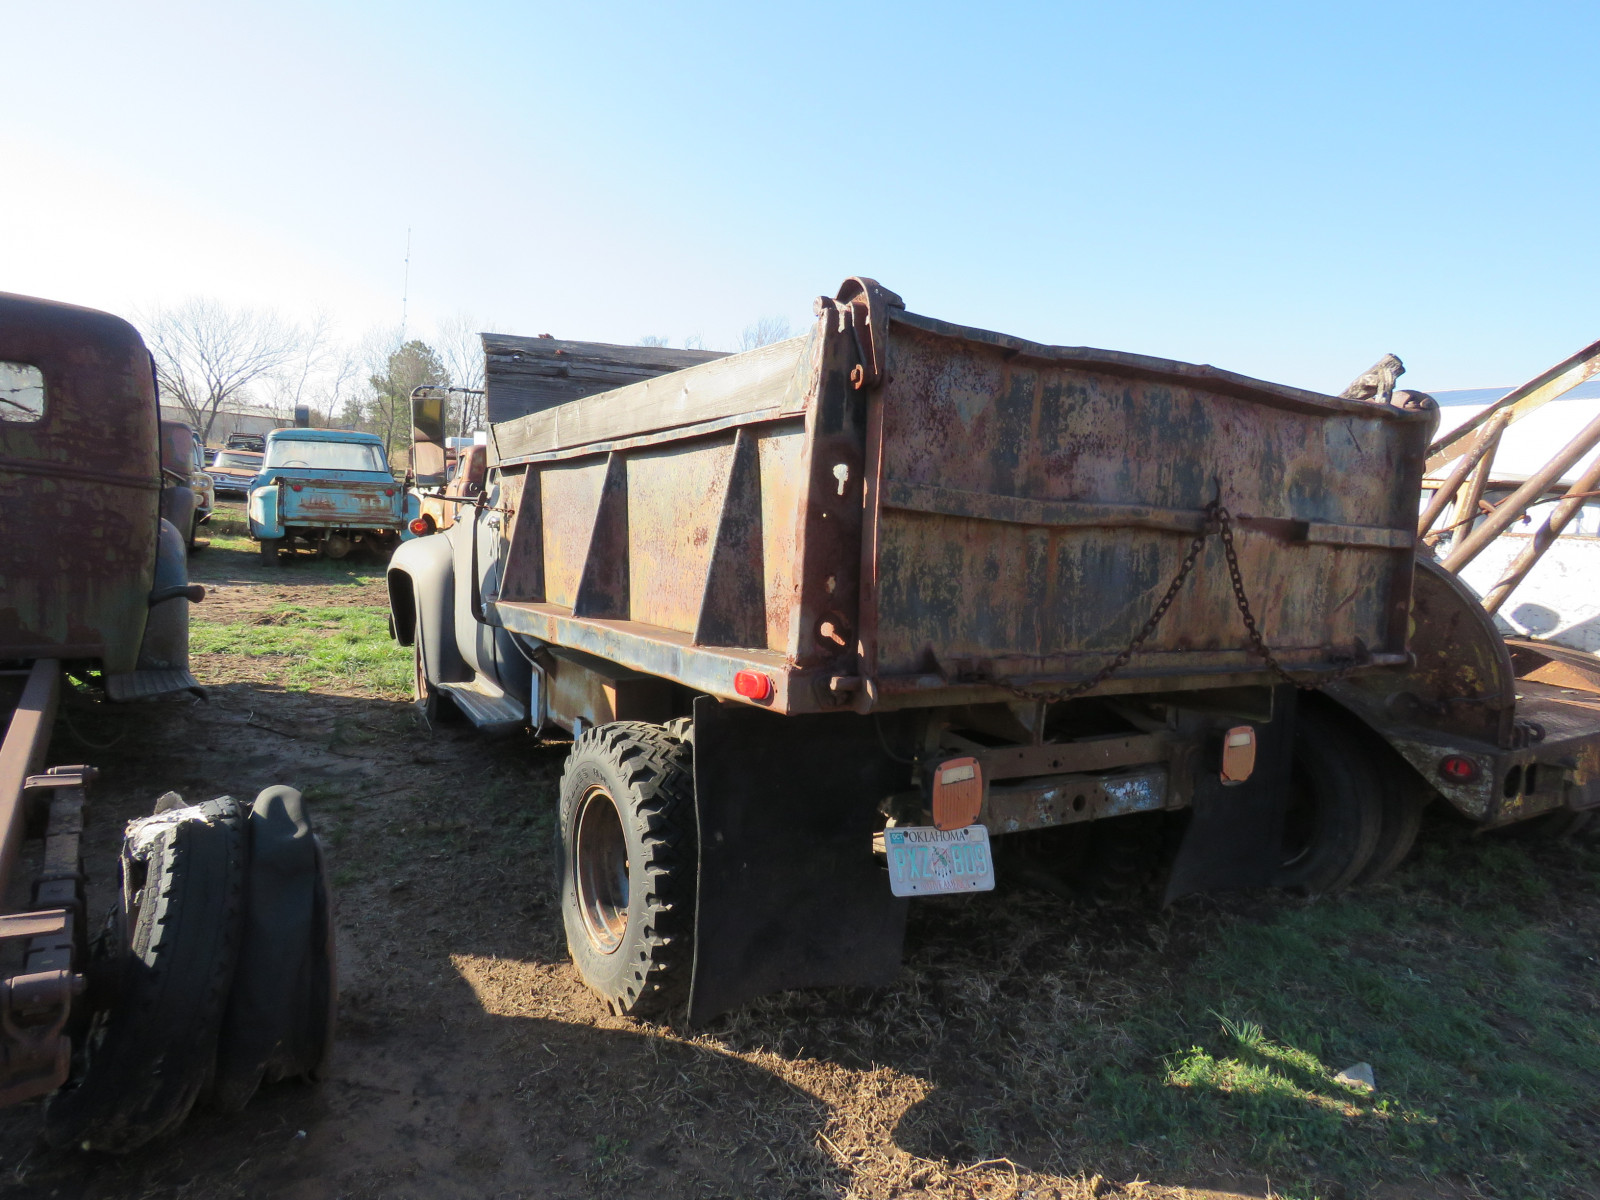 1953 Ford Dump Truck - Image 3